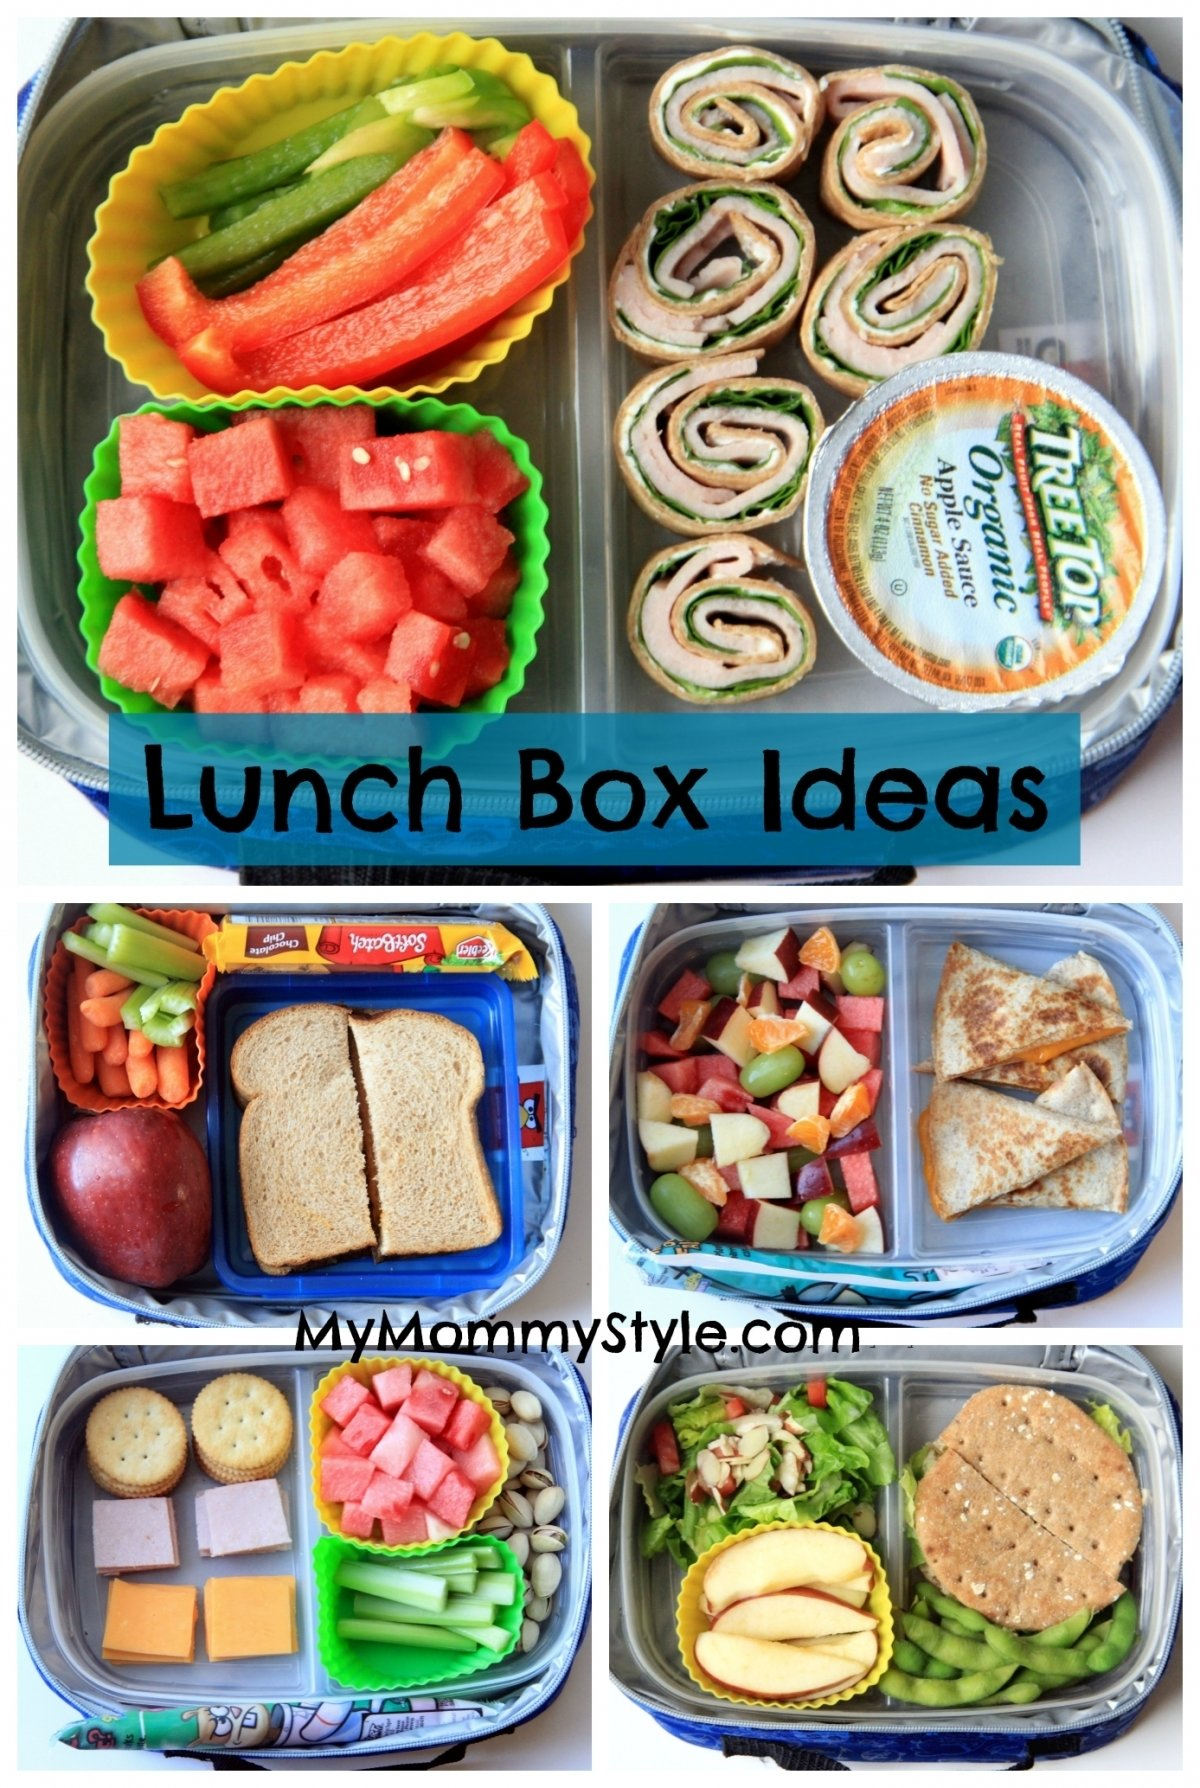 10 Perfect Kids Lunch Ideas For School lunch box ideas kid lunches school lunch cold lunch ideas healthy 4